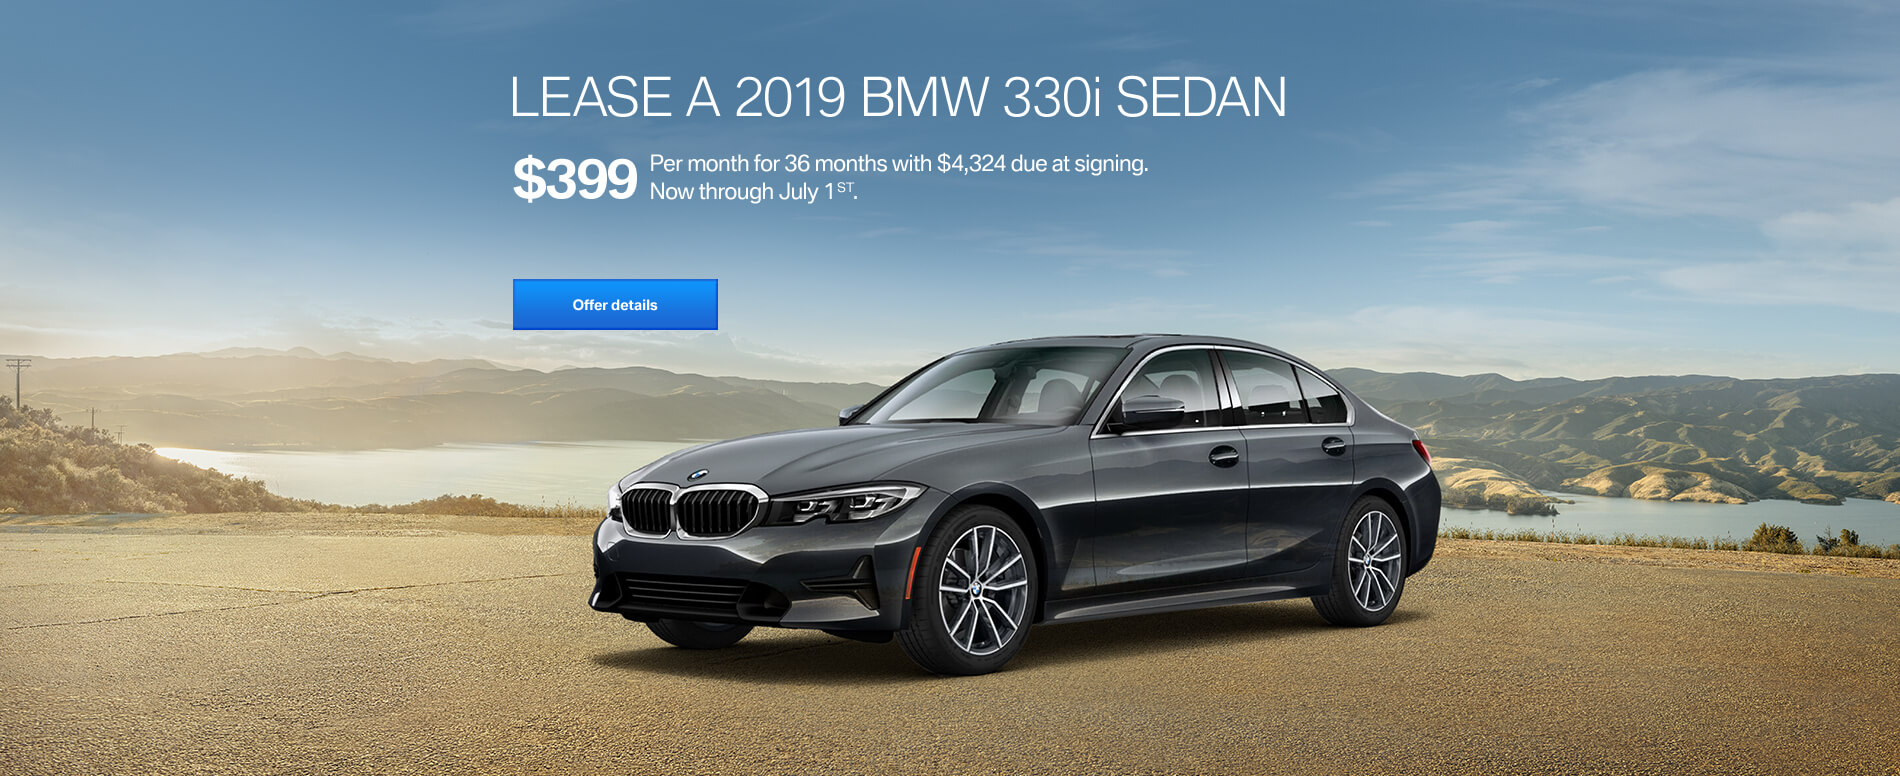 LEASE A 2019 BMW 330i  FOR $399/MONTH FOR 36 MONTHS WITH $4,324